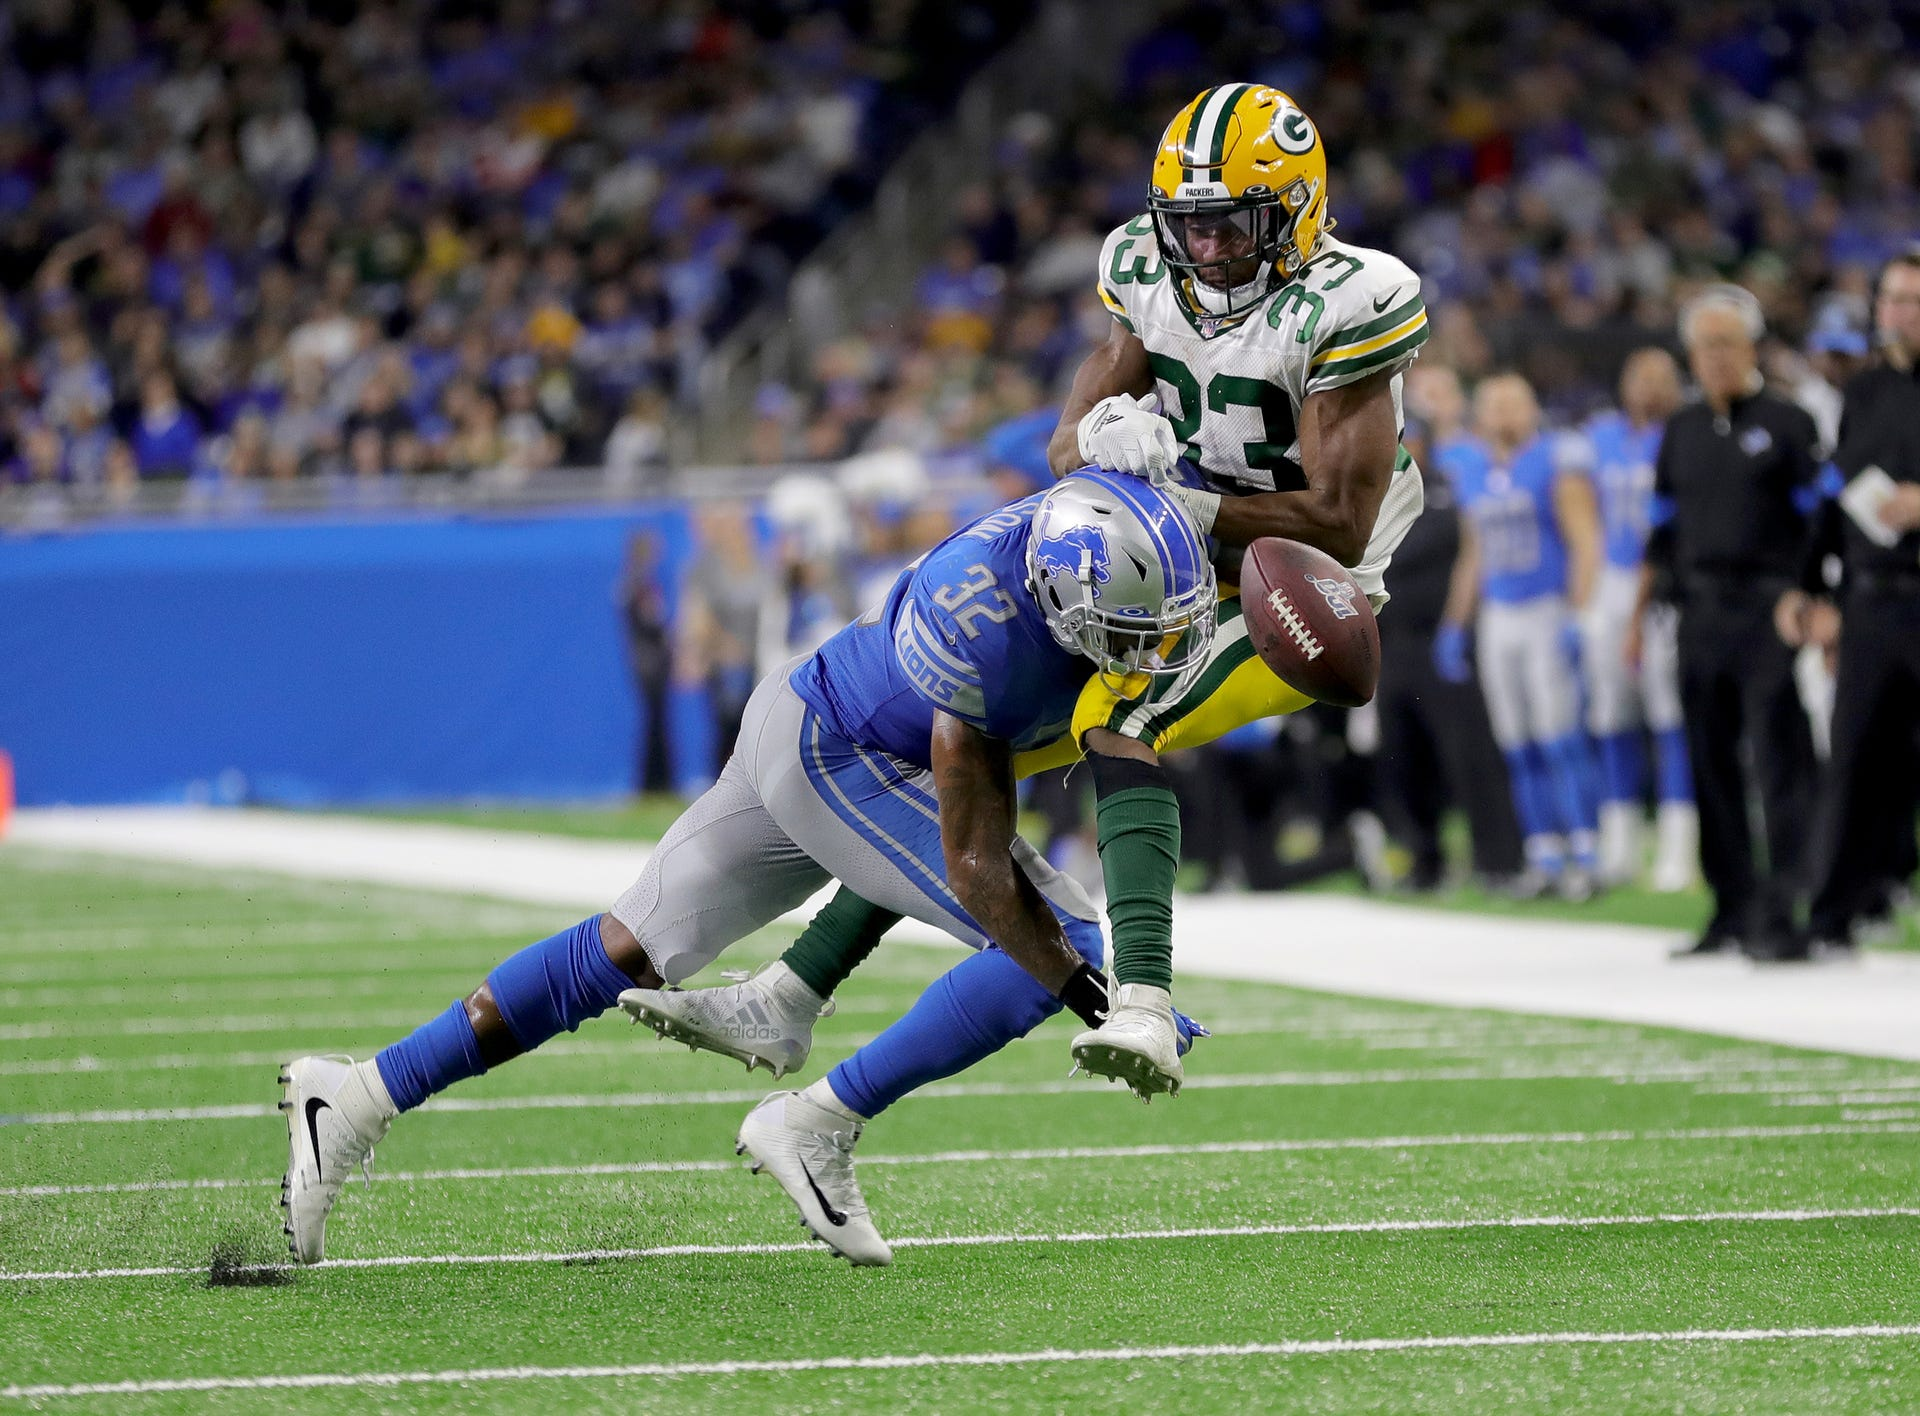 Detroit Lions safety Tavon Wilson breaks up a pass to Green Bay Packers running back Aaron Jones during the second half Sunday, Dec. 29, 2019 at Ford Field.